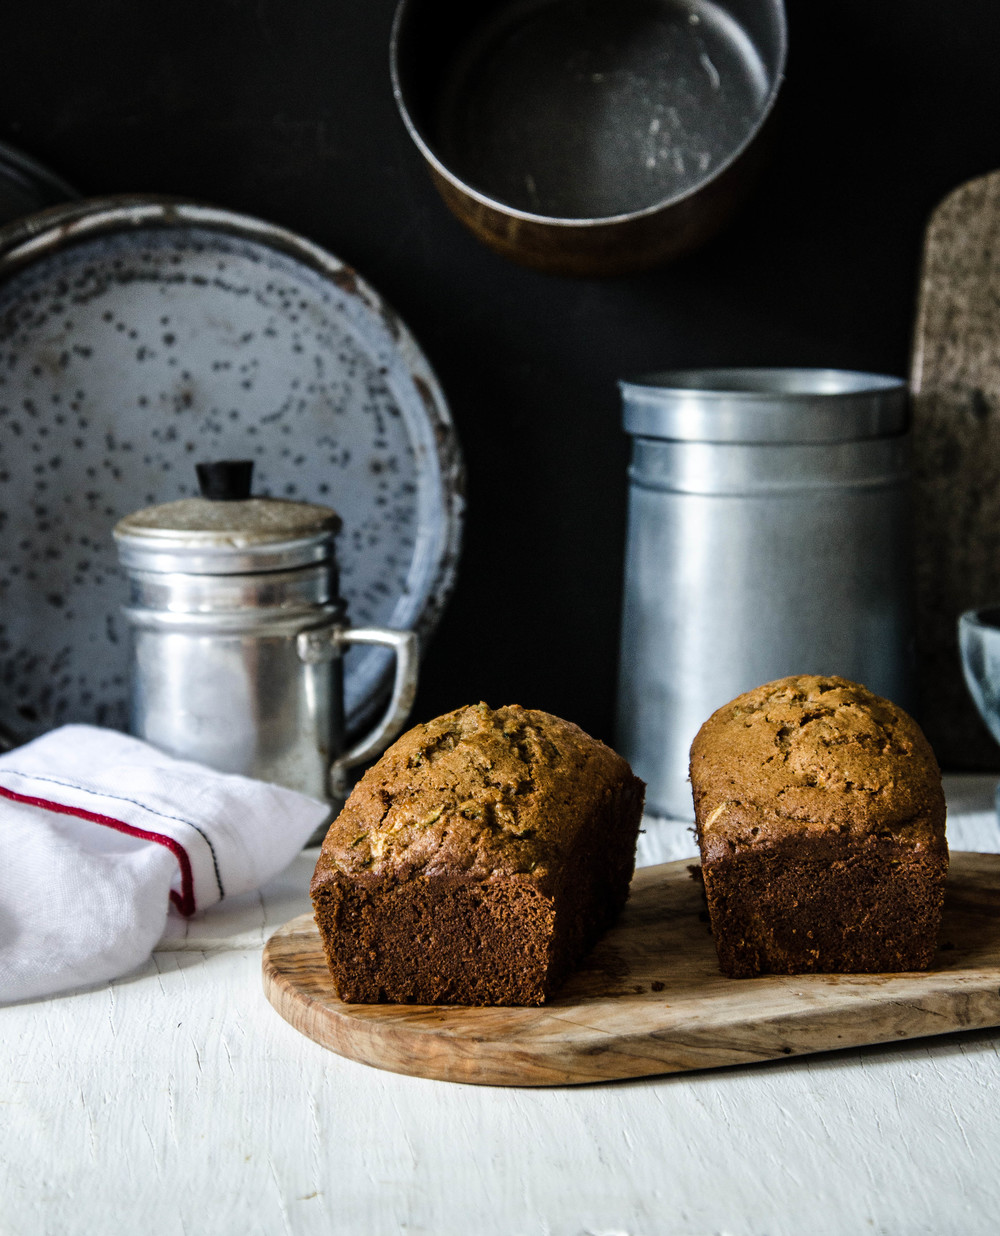 ROSE & IVY Journal Spiced Zucchini Olive Oil Bread